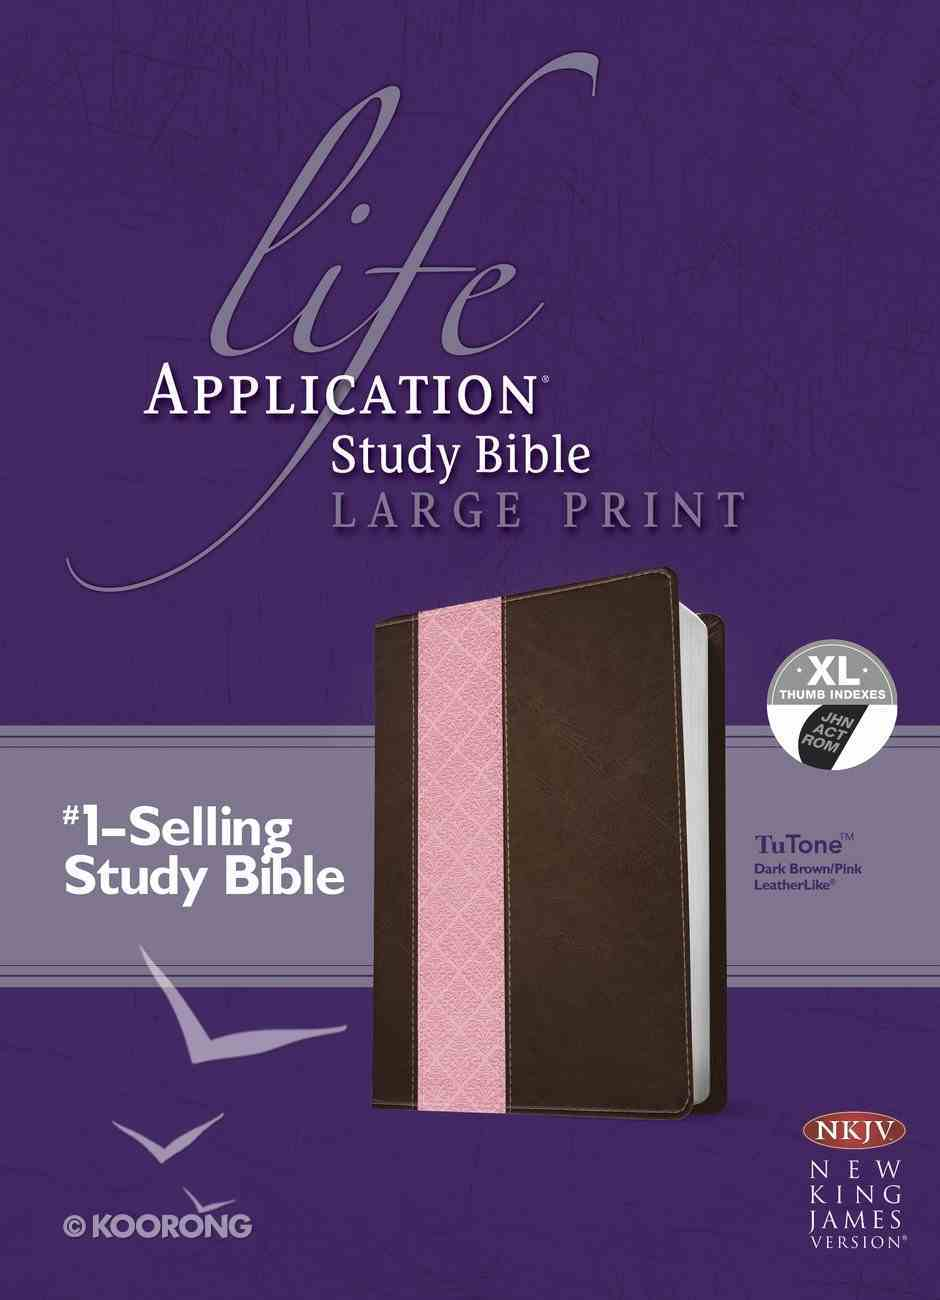 NKJV Life Application Large Print Study Bible Indexed Dark Brown/Pink 2nd Edition (Red Letter Edition) Imitation Leather